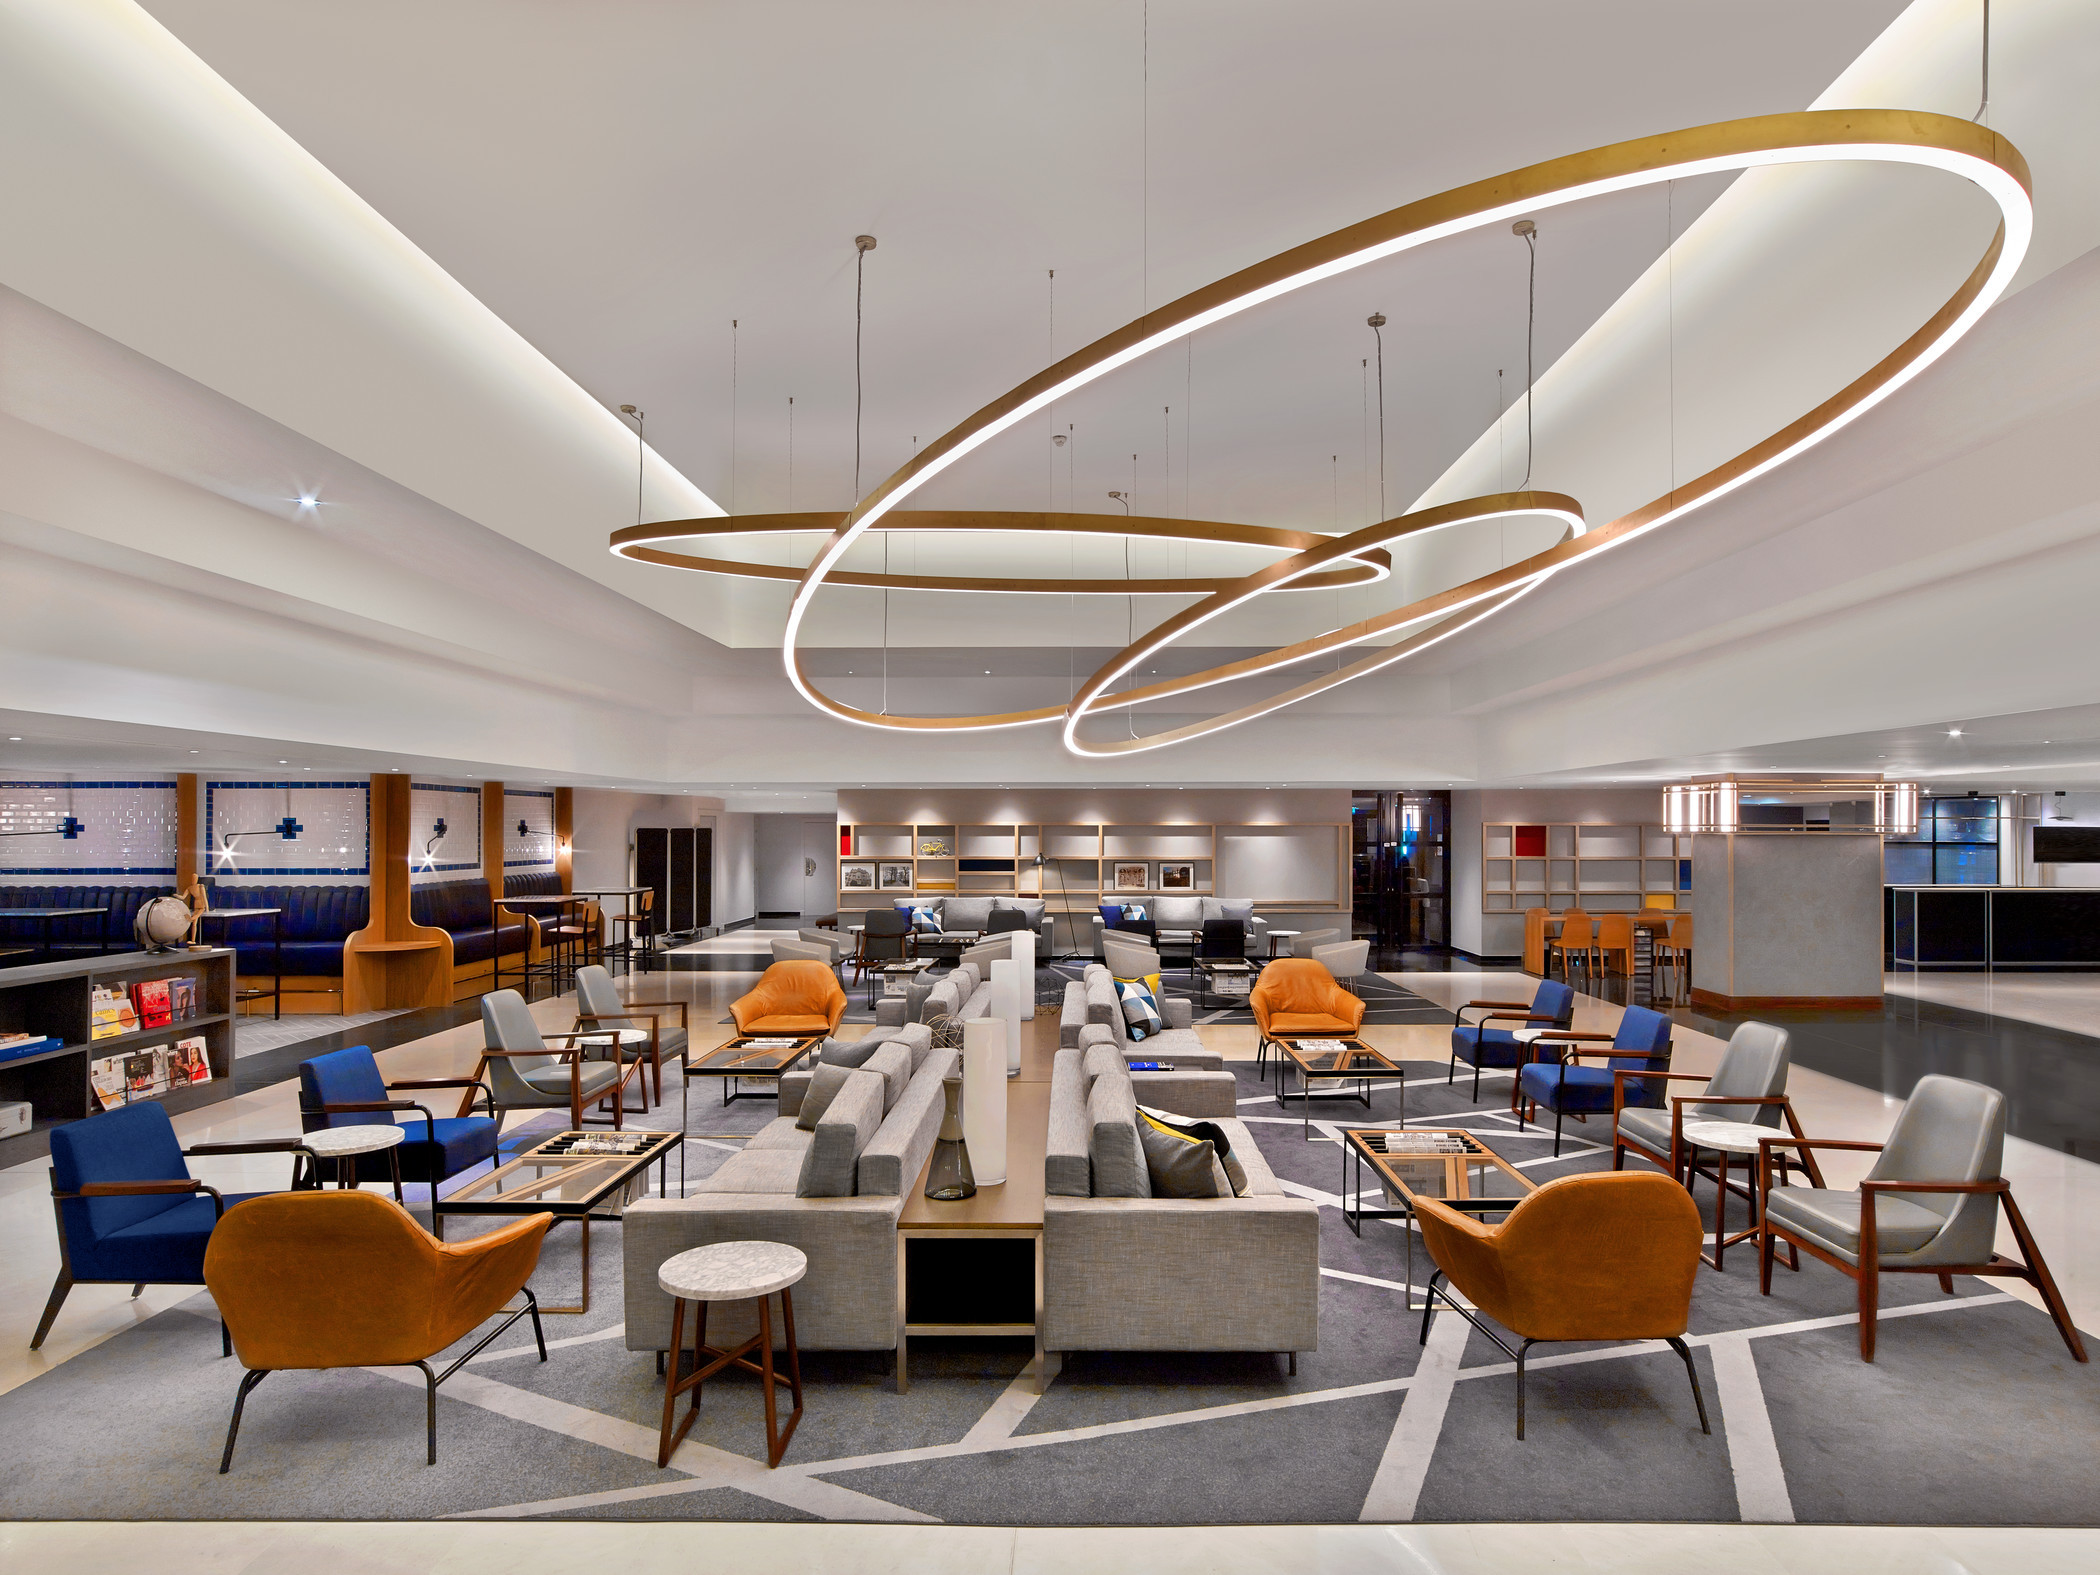 le meridien crown jewel shines in the city of light: brand